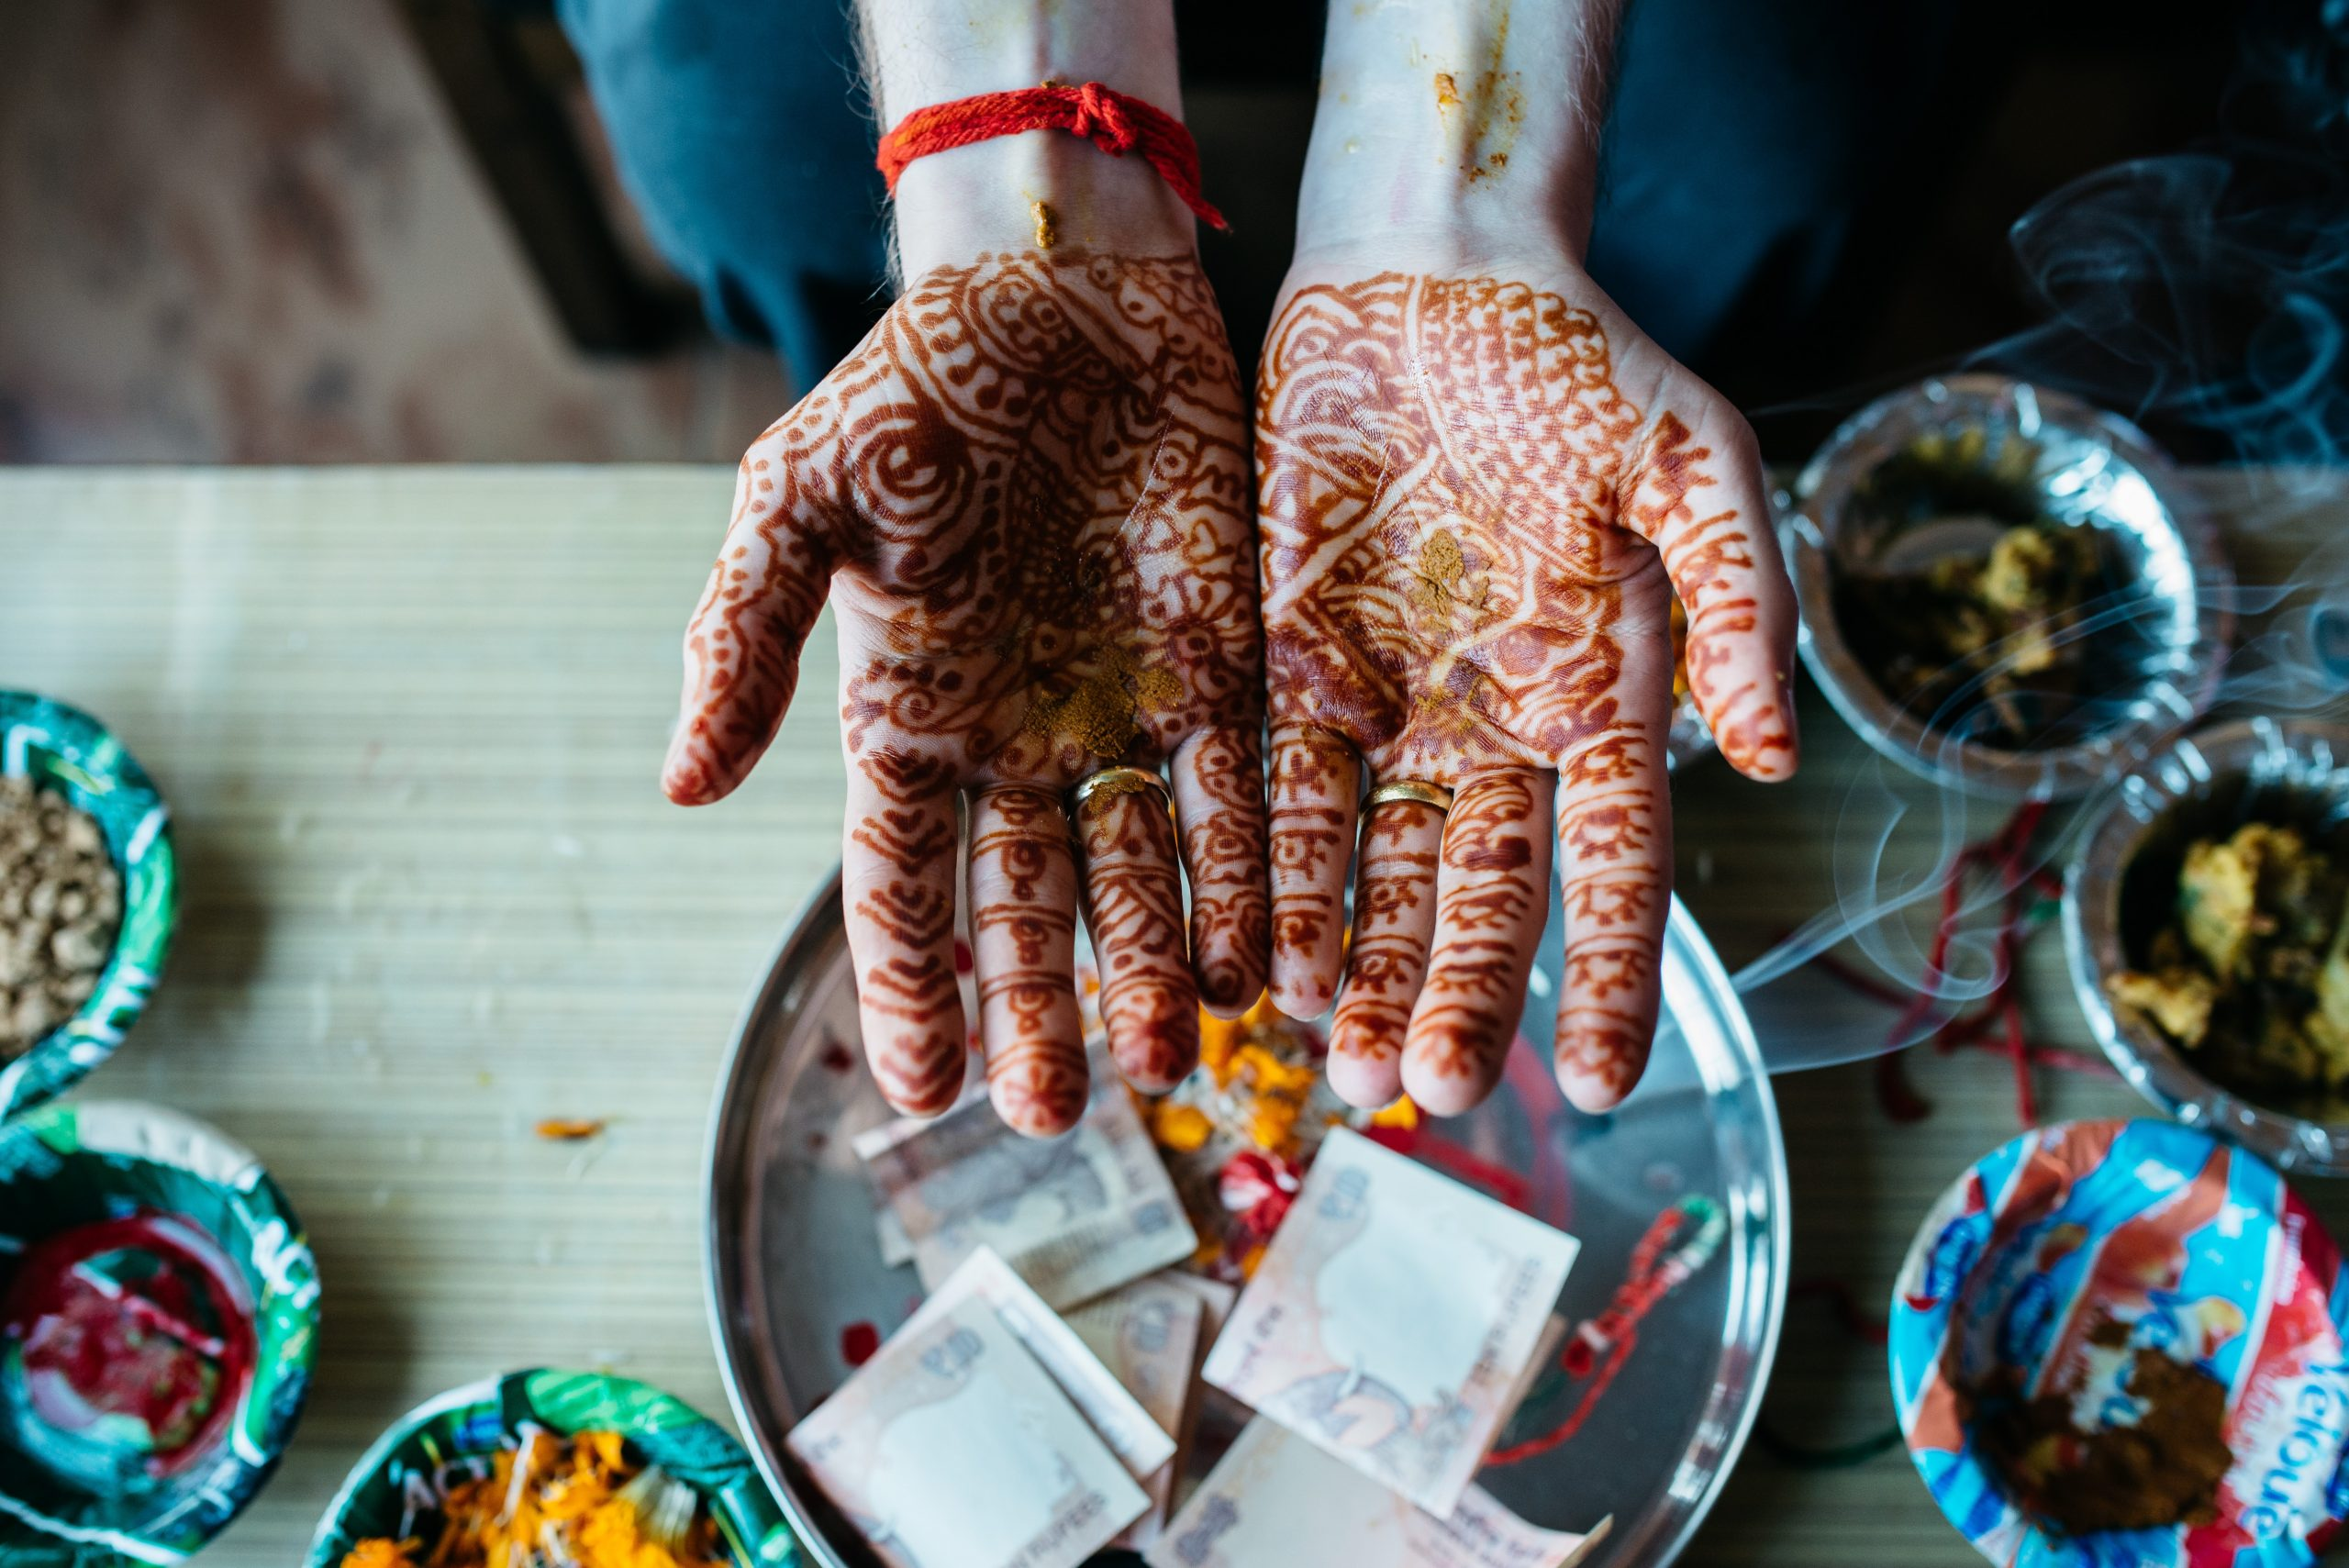 As a wedding photographer I had the opportunity to document the wedding of two friends in Shimla in India. This tradition belongs to the groom in India. It shows the hands of the goom right before the main wedding ceremony.